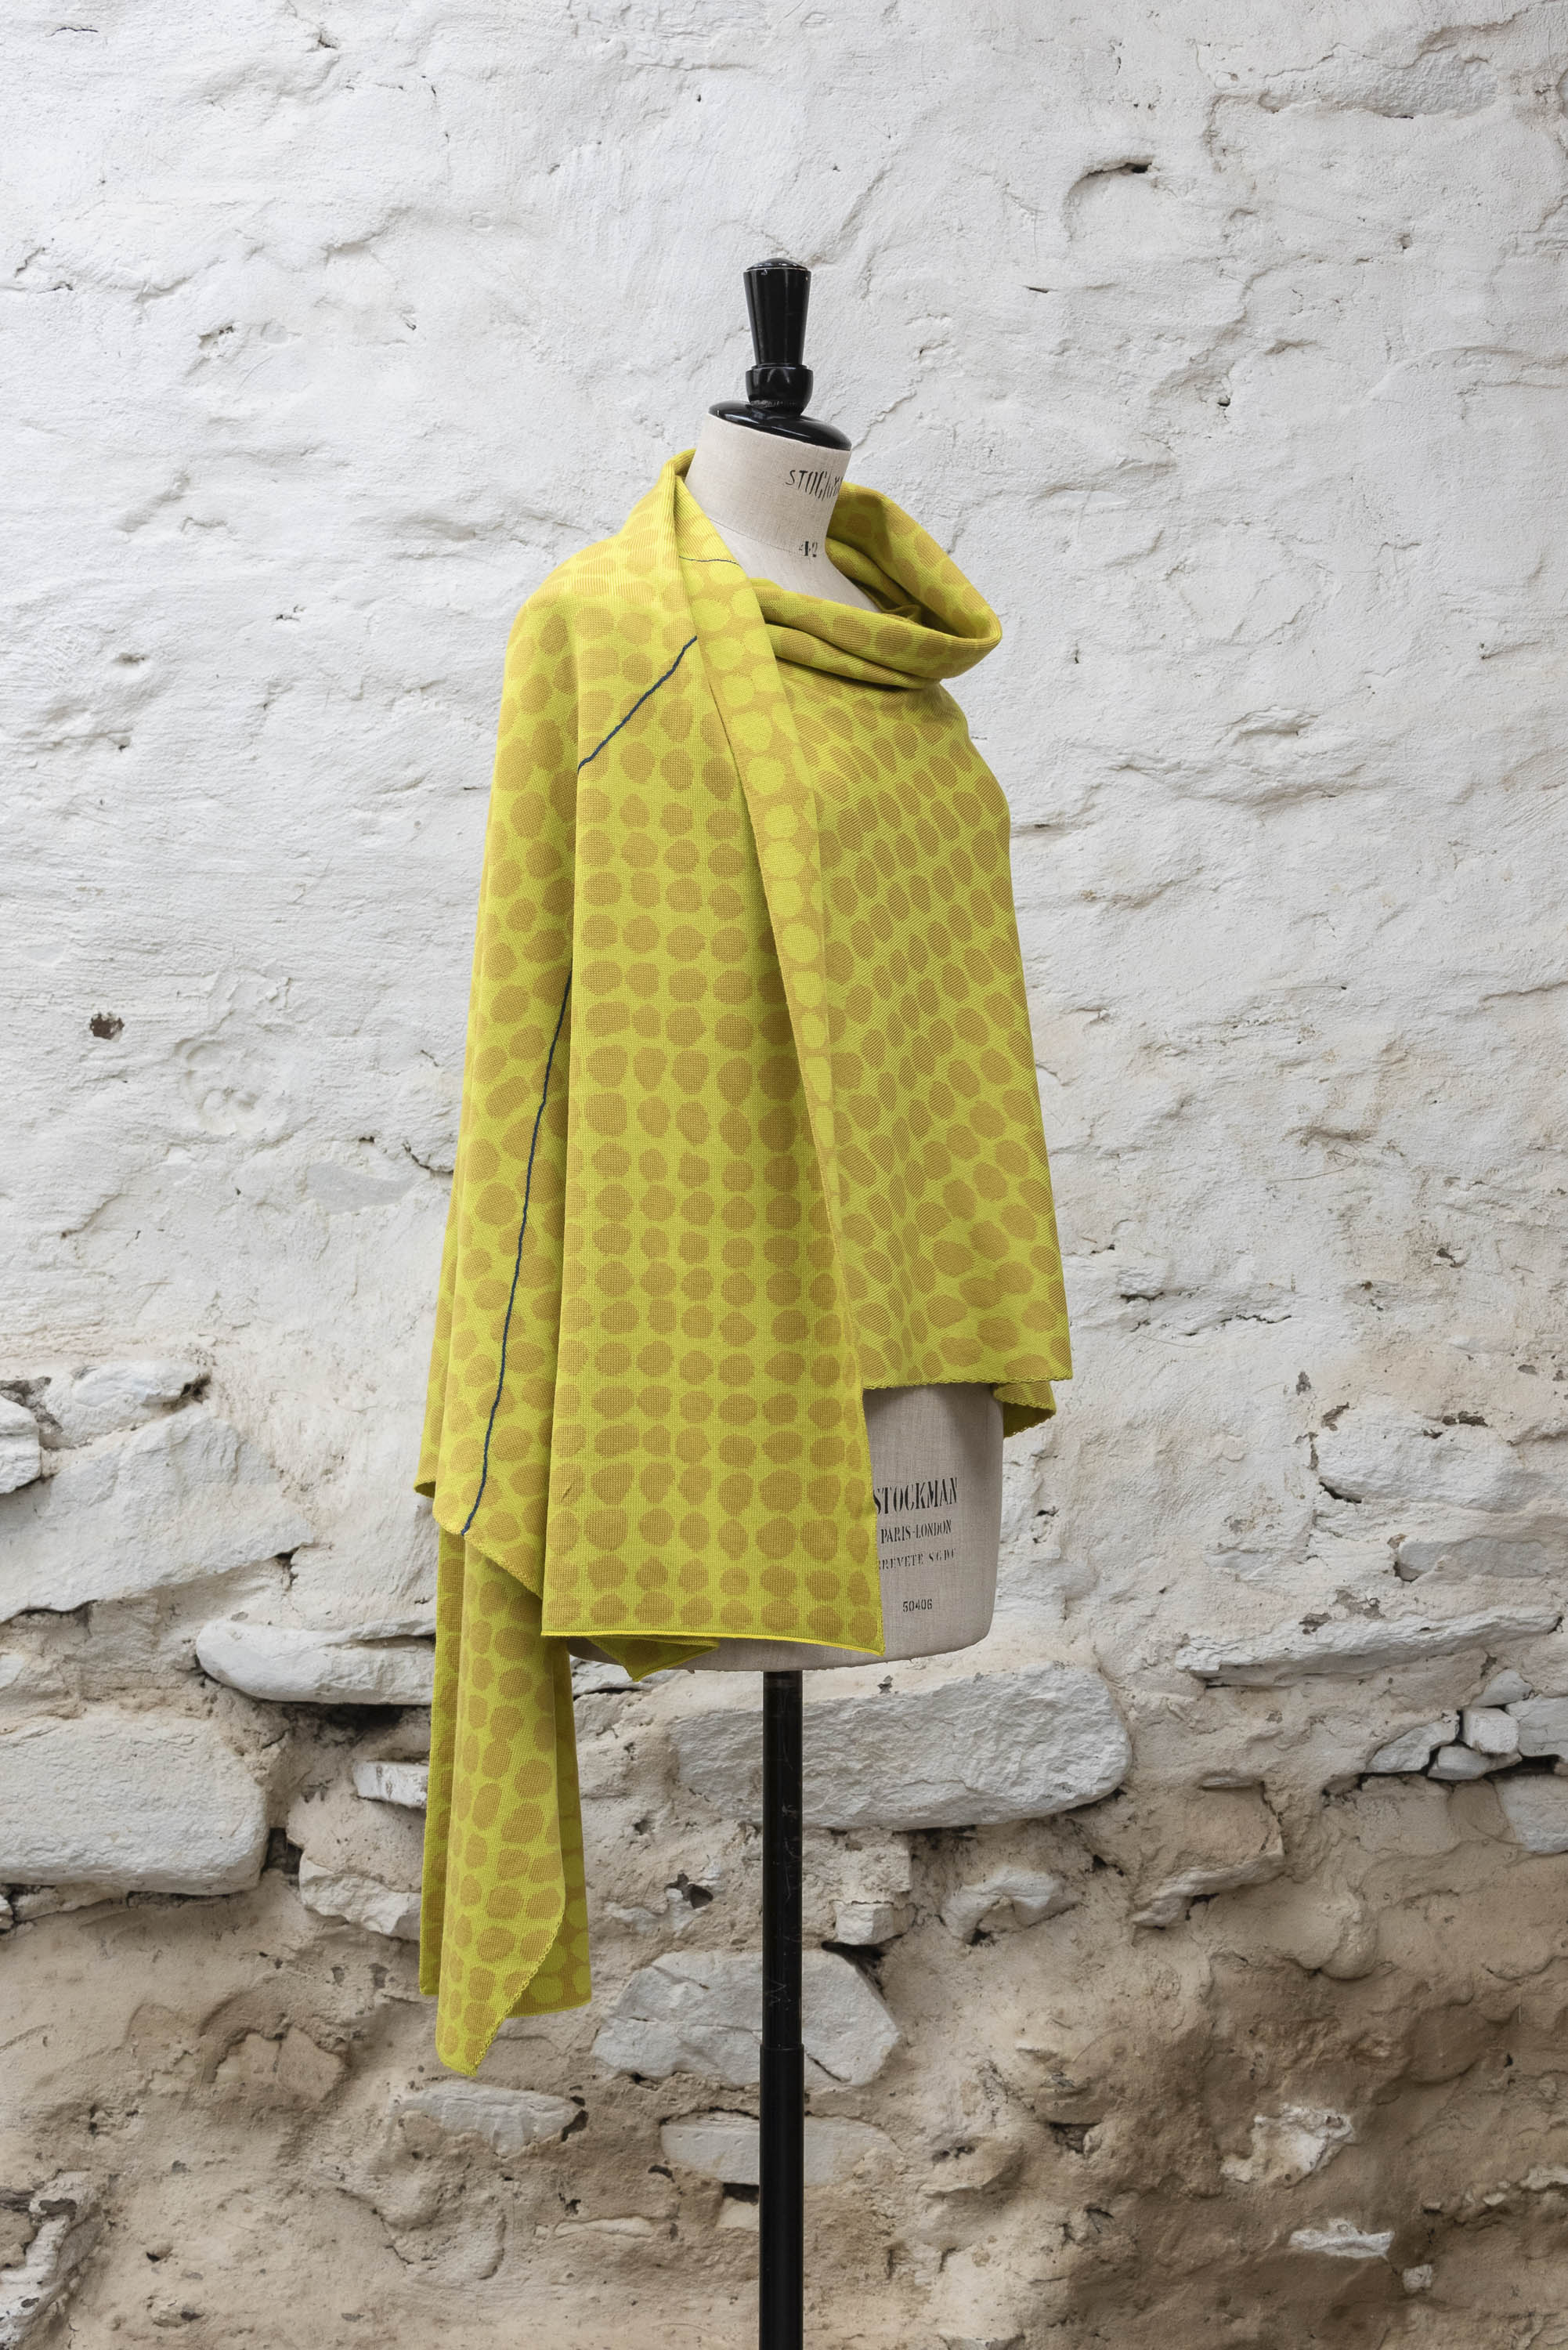 Contemporary Shetland shawl knitted in yellows with blue detail. Abstract pattern of irregular dots